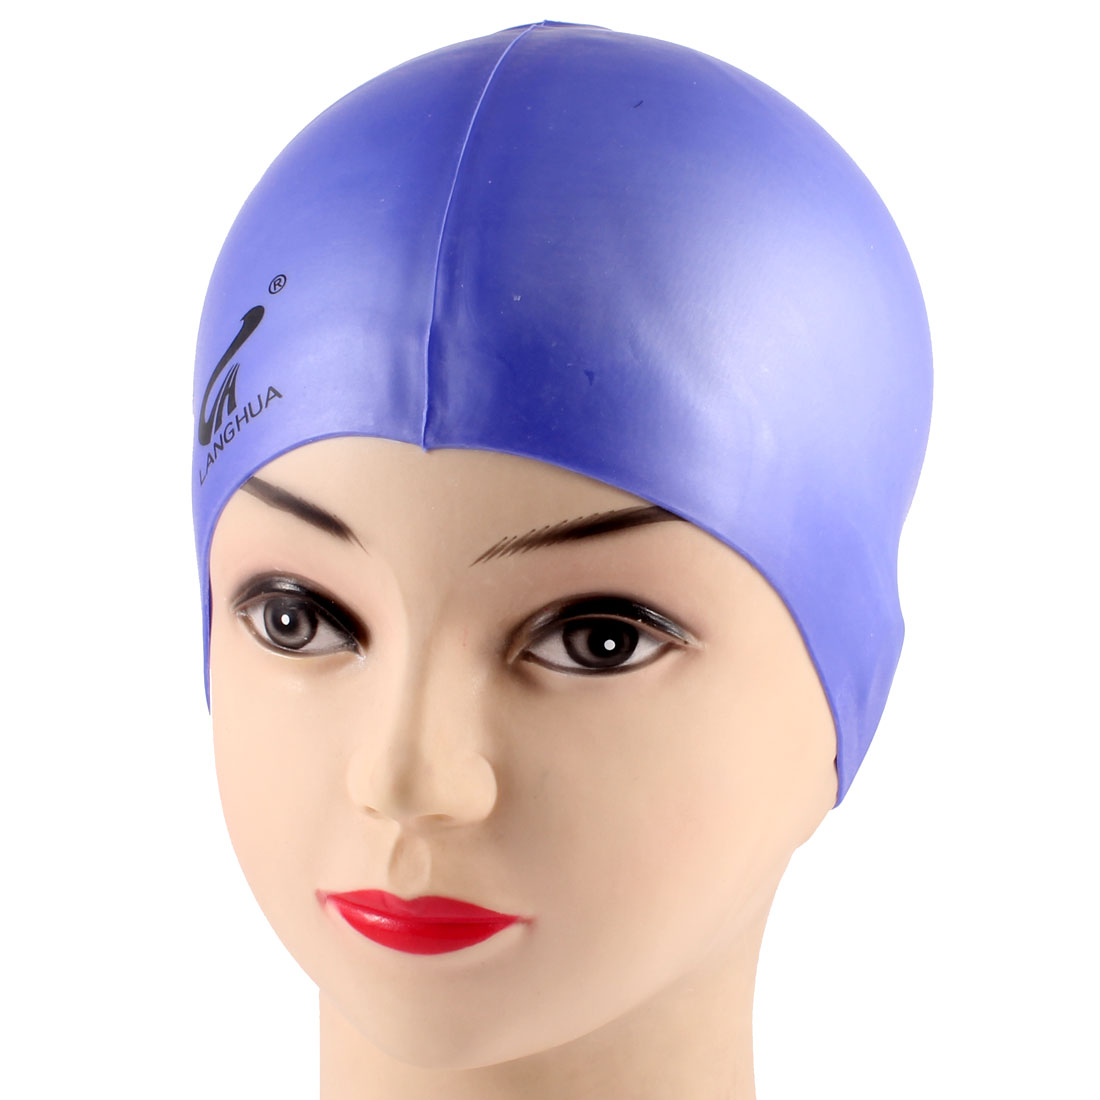 Adults Soft Silicone Dome Shape Elastic Swimming Cap Purple